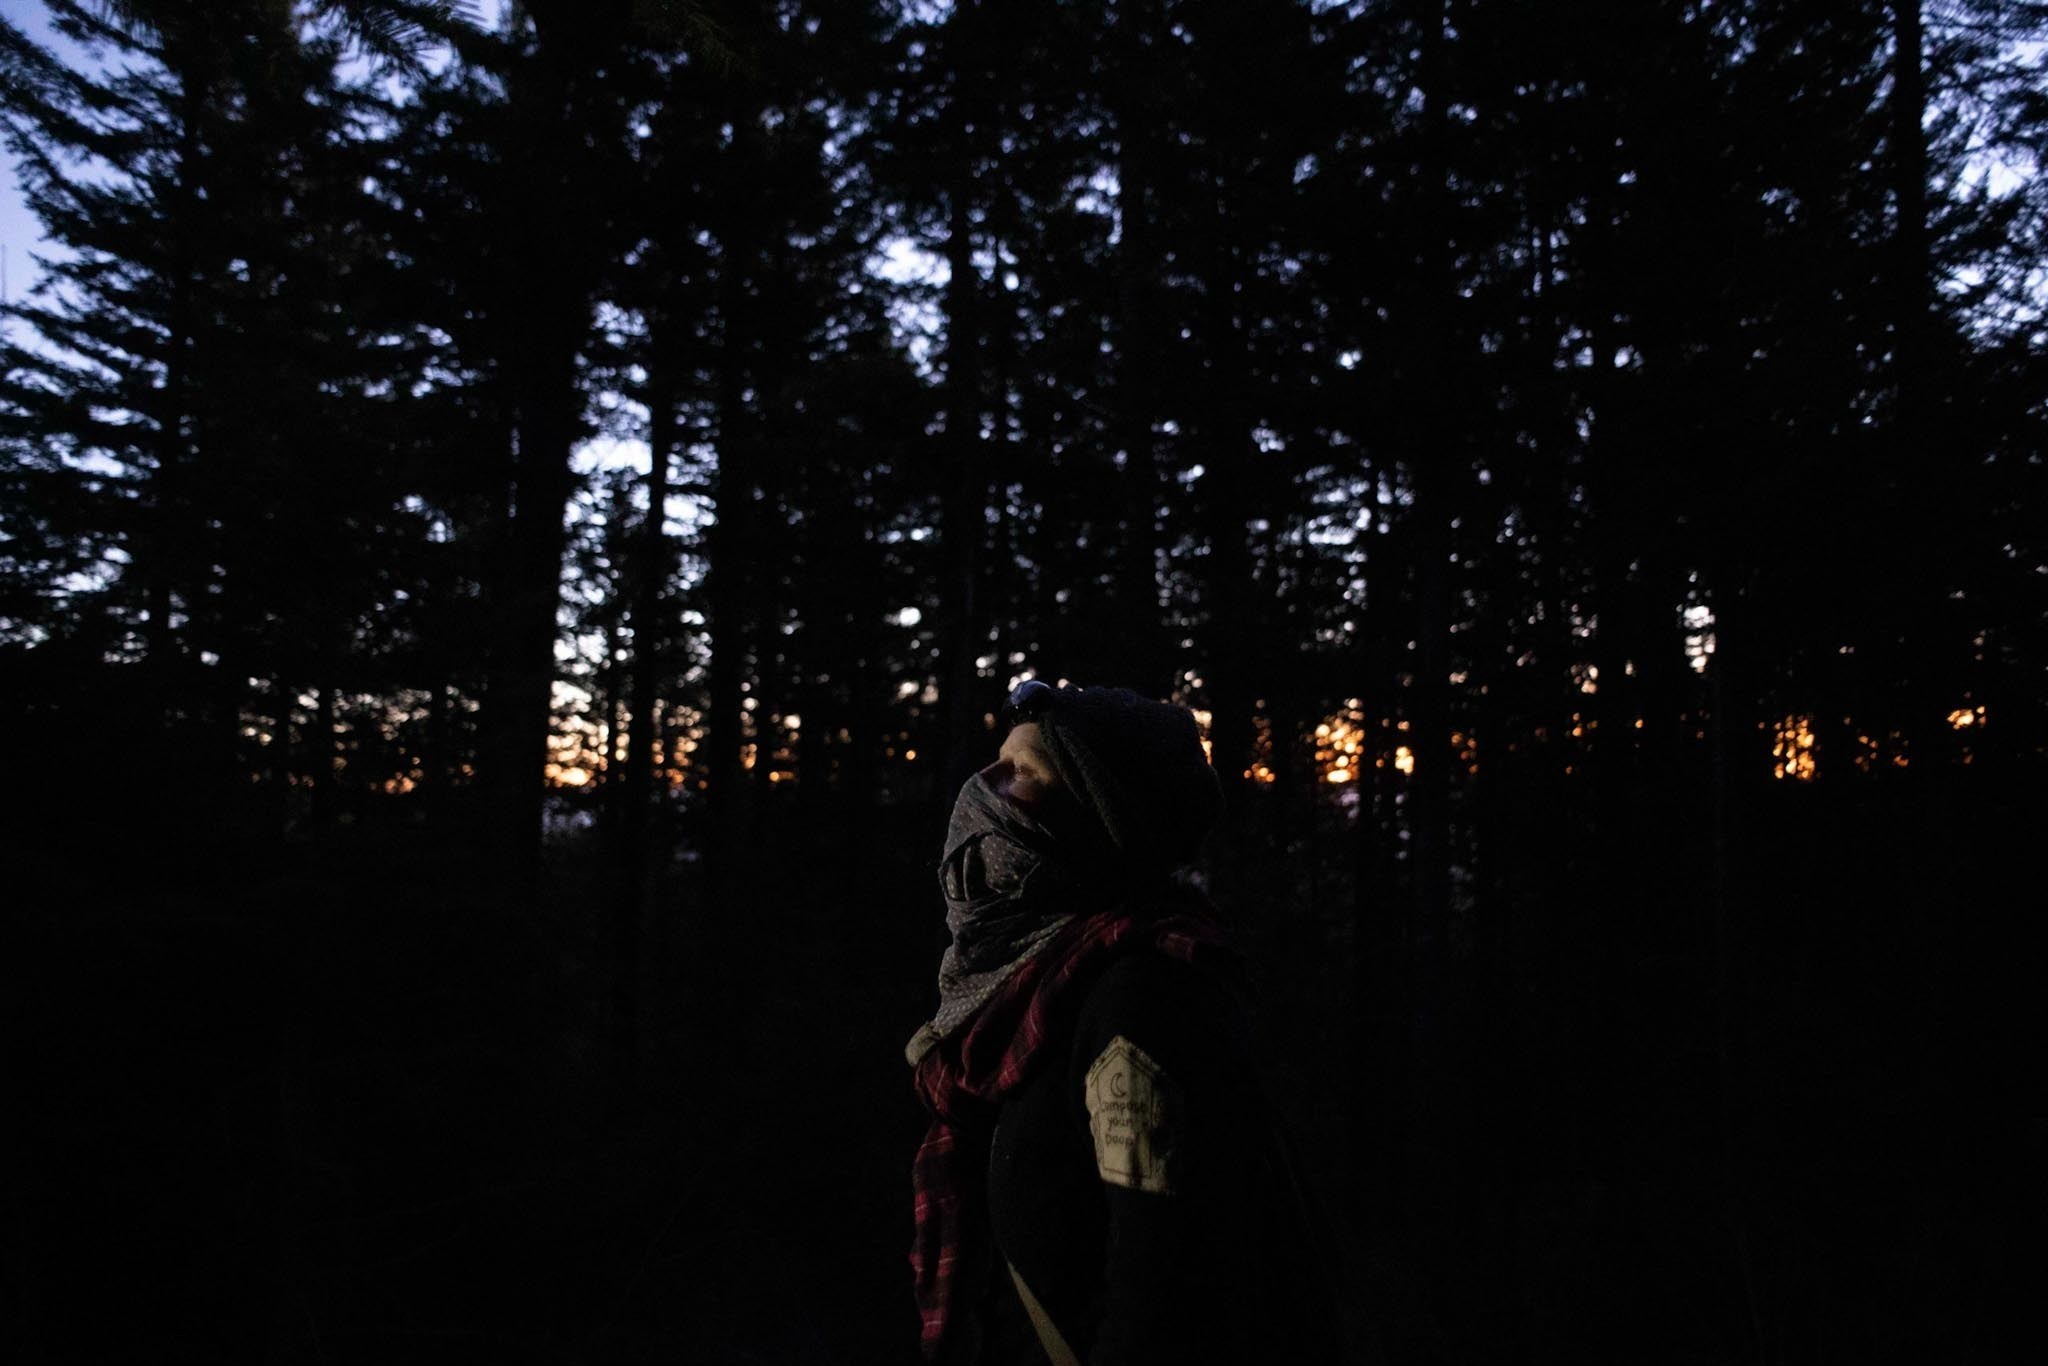 An activist wearing a bandana in the woods at sunset